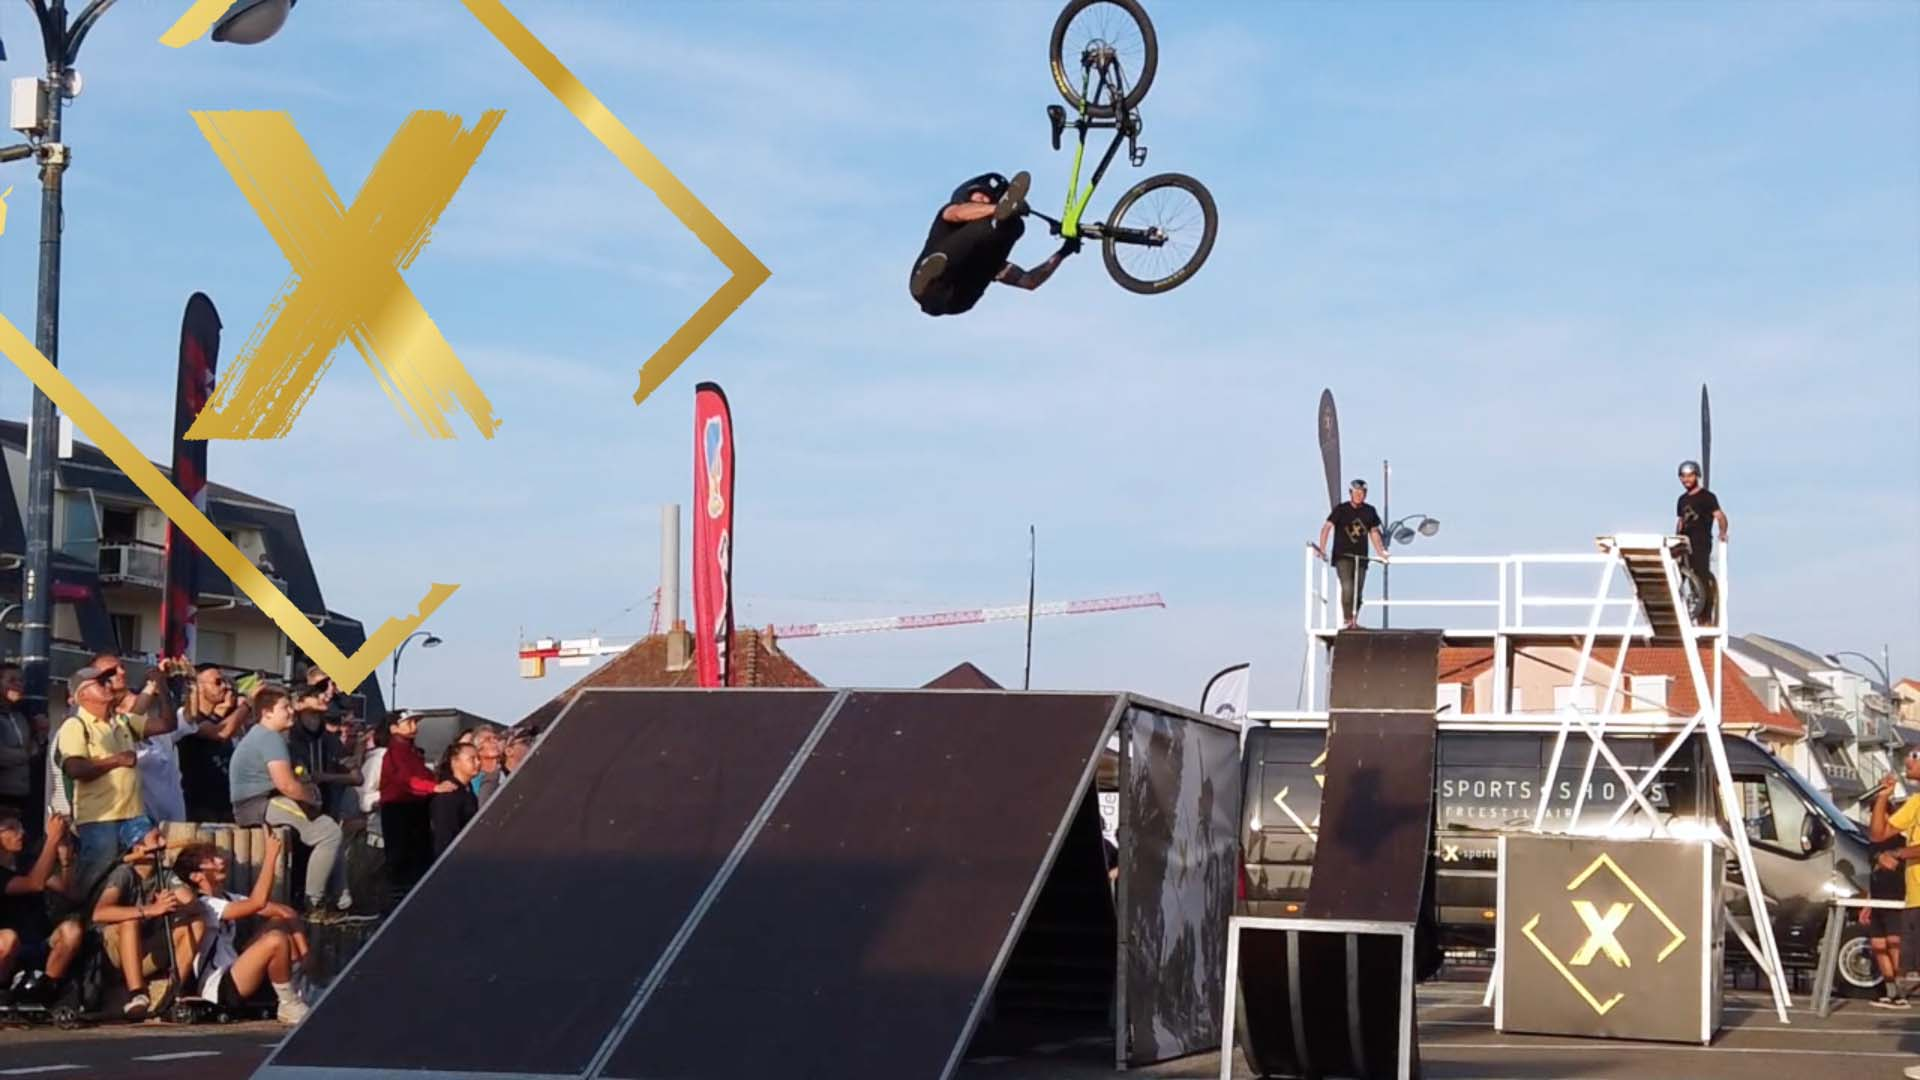 X-sports shows - Freerider Fest 2019